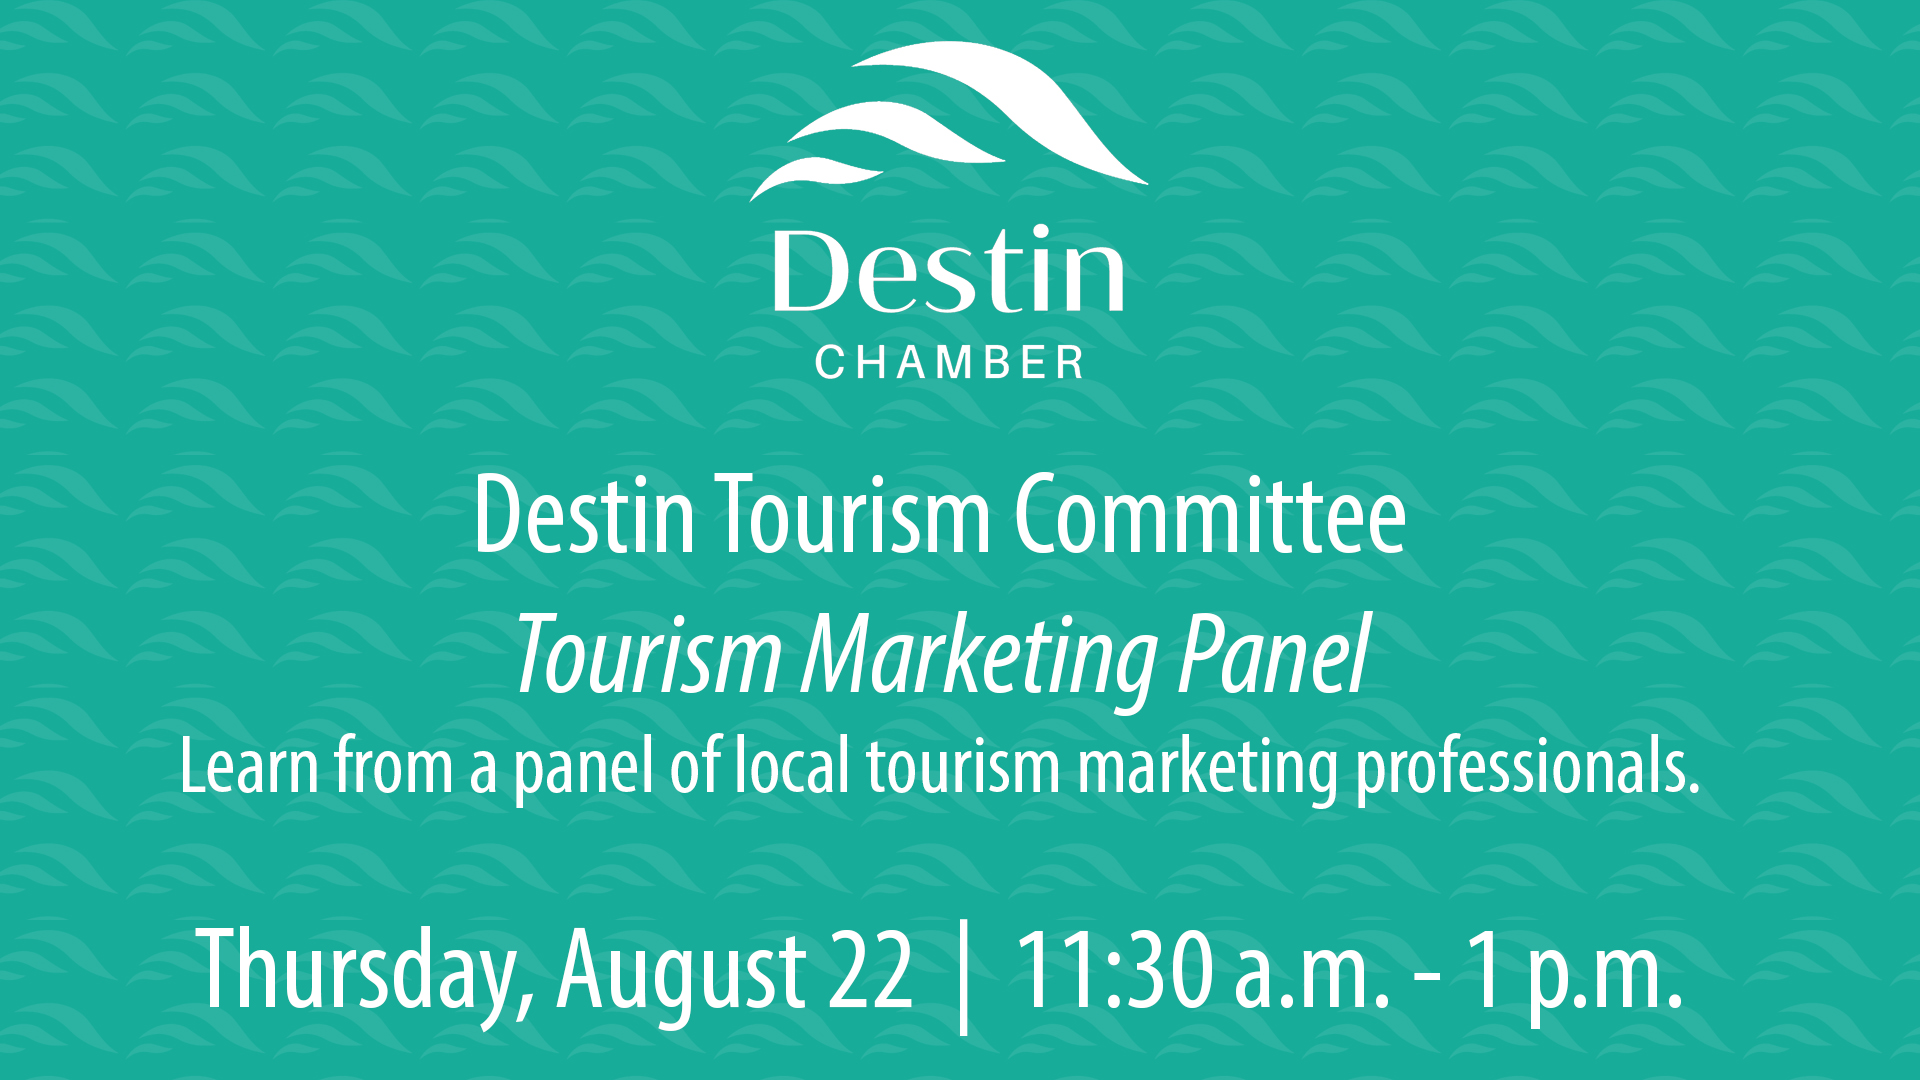 Destin Chamber Tourism Committee